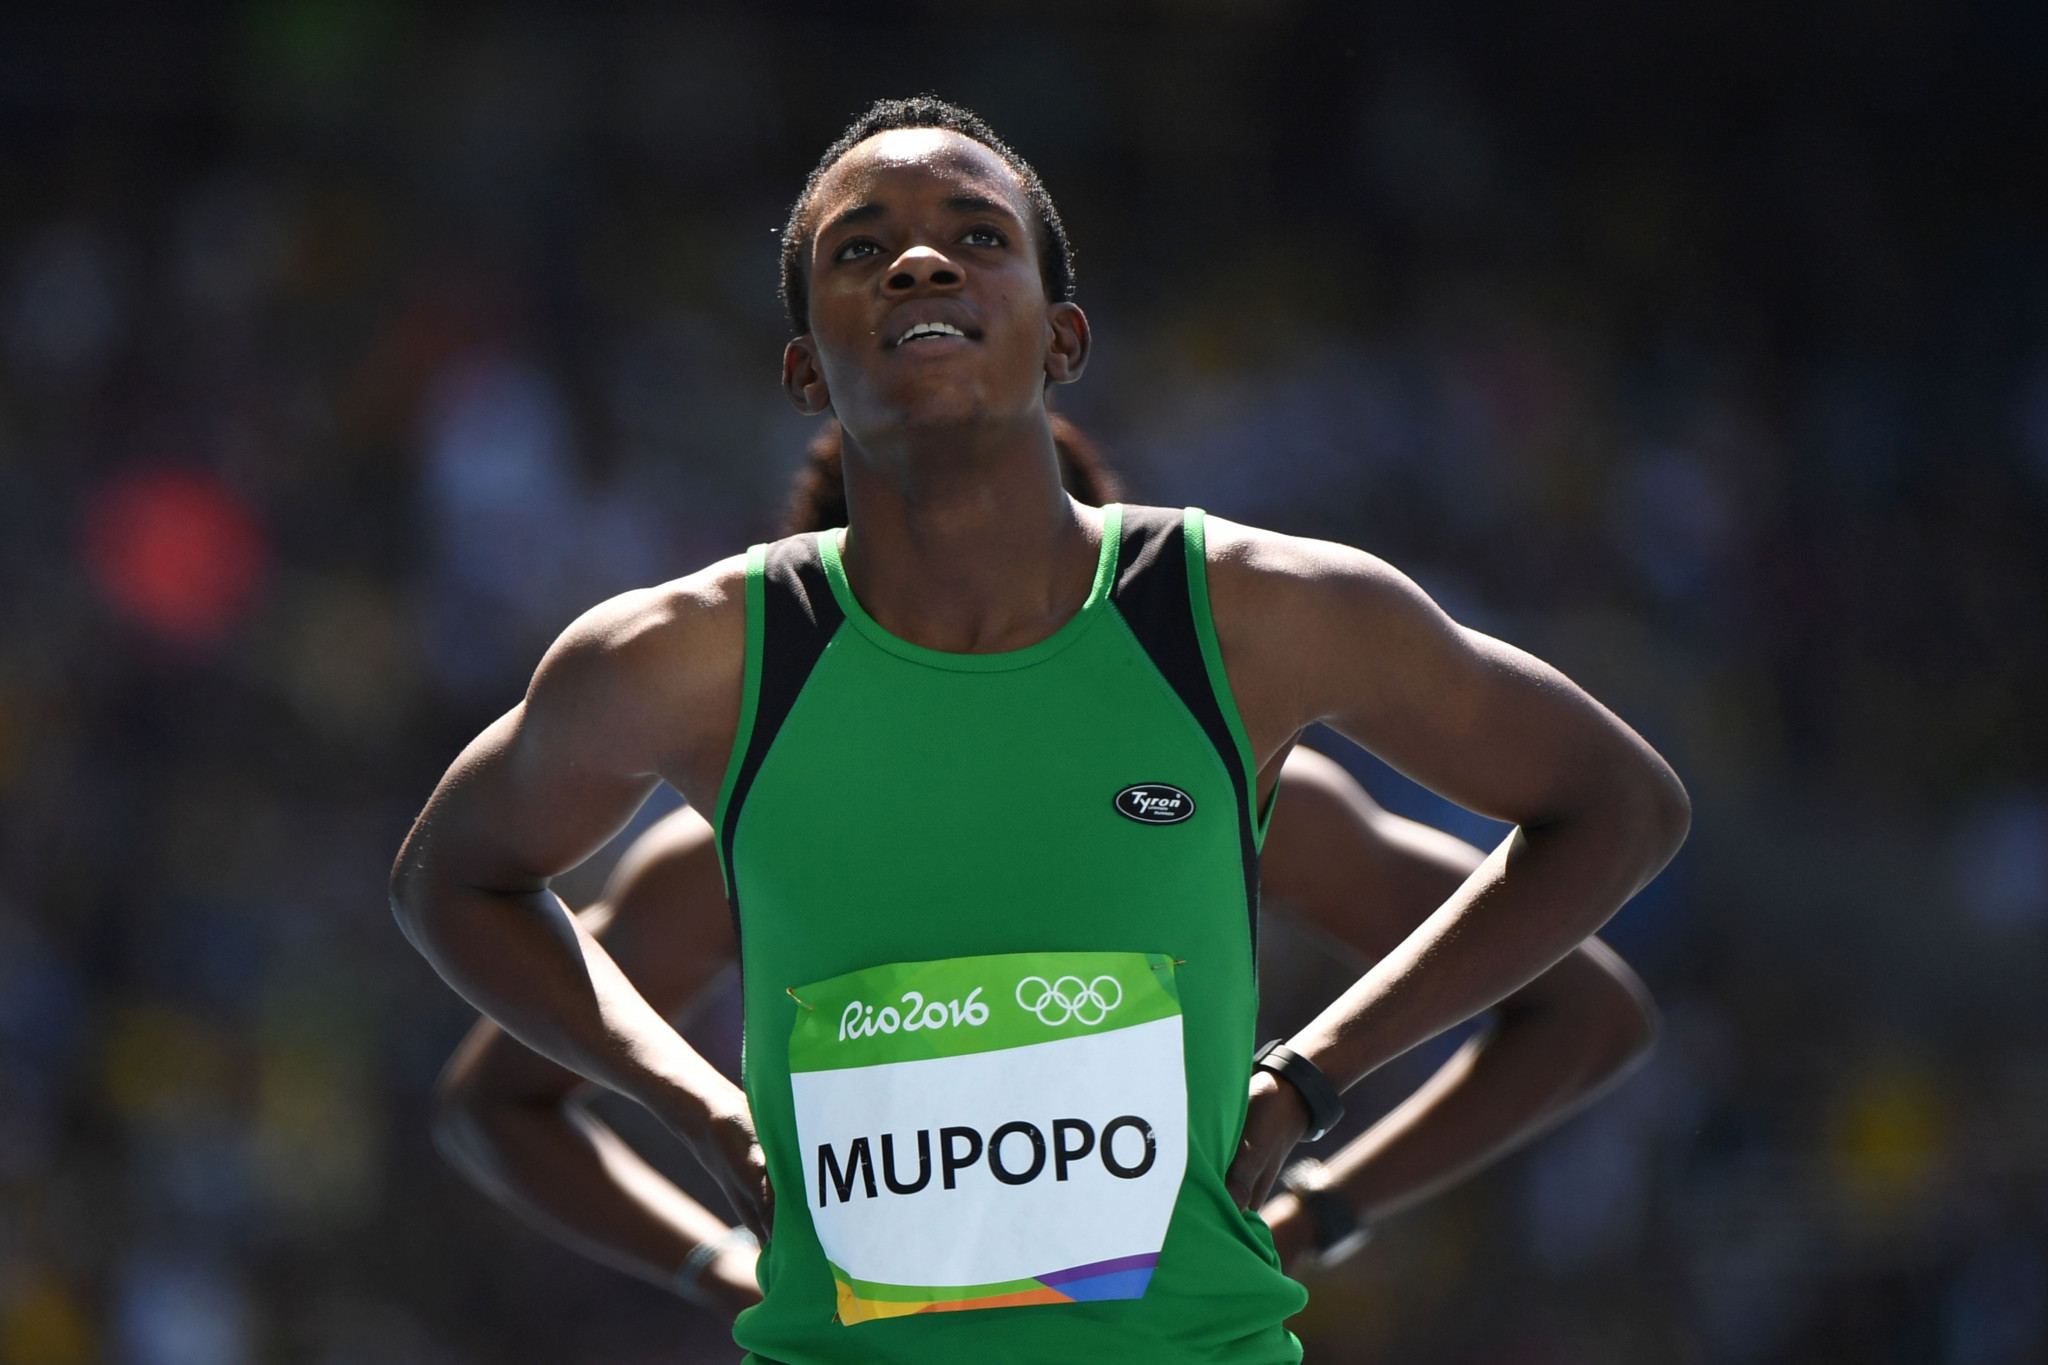 Zambian 400m runner Mupopo given four-year ban after positive drugs test at 2017 World Championships